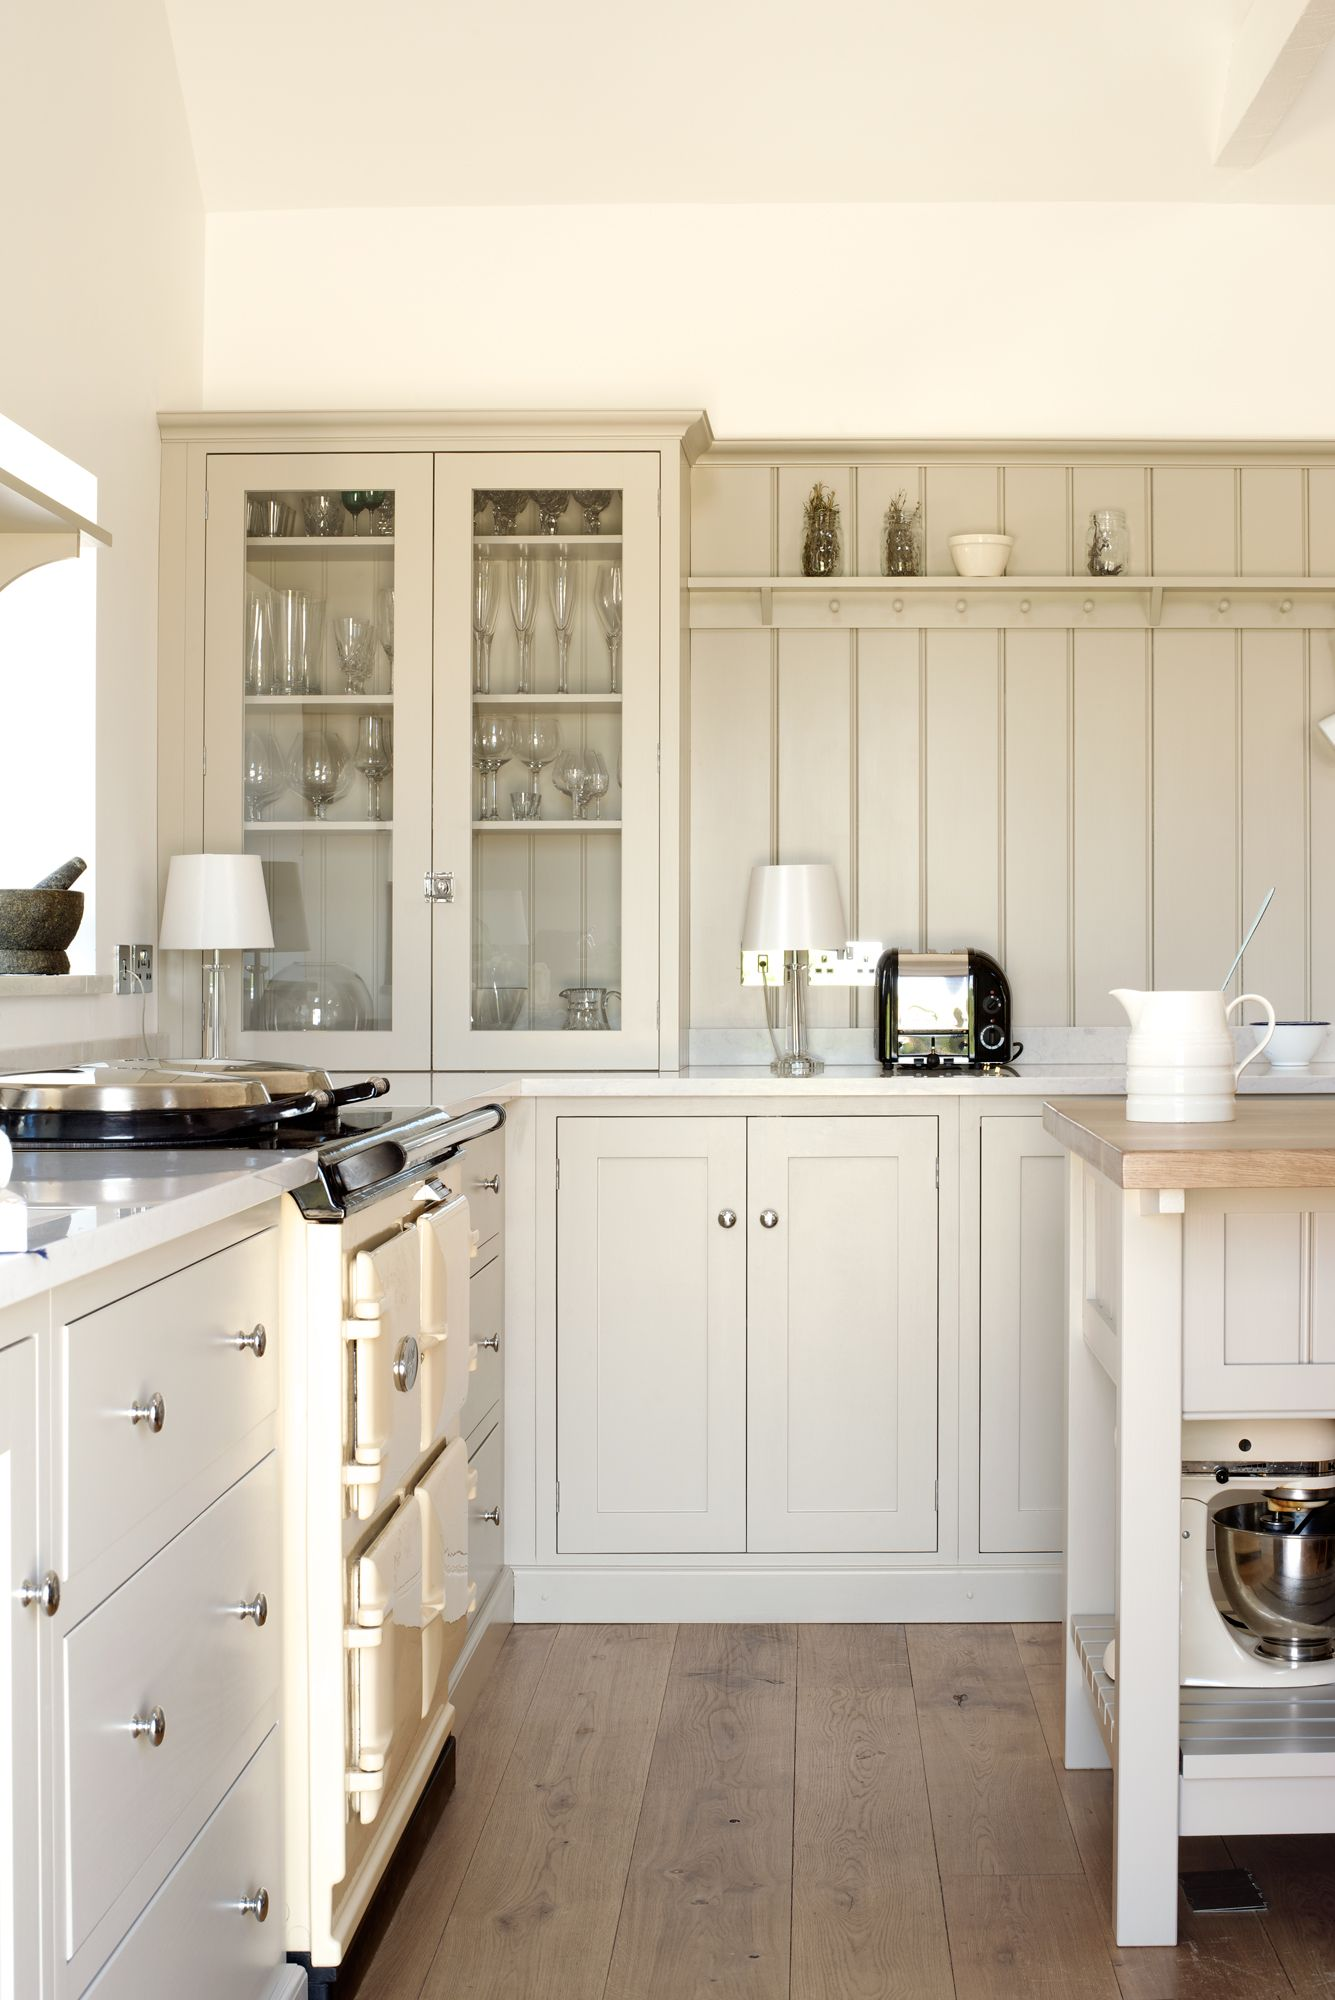 The Real Shaker Kitchen by deVOL painted in our favourite \'Mushroom ...